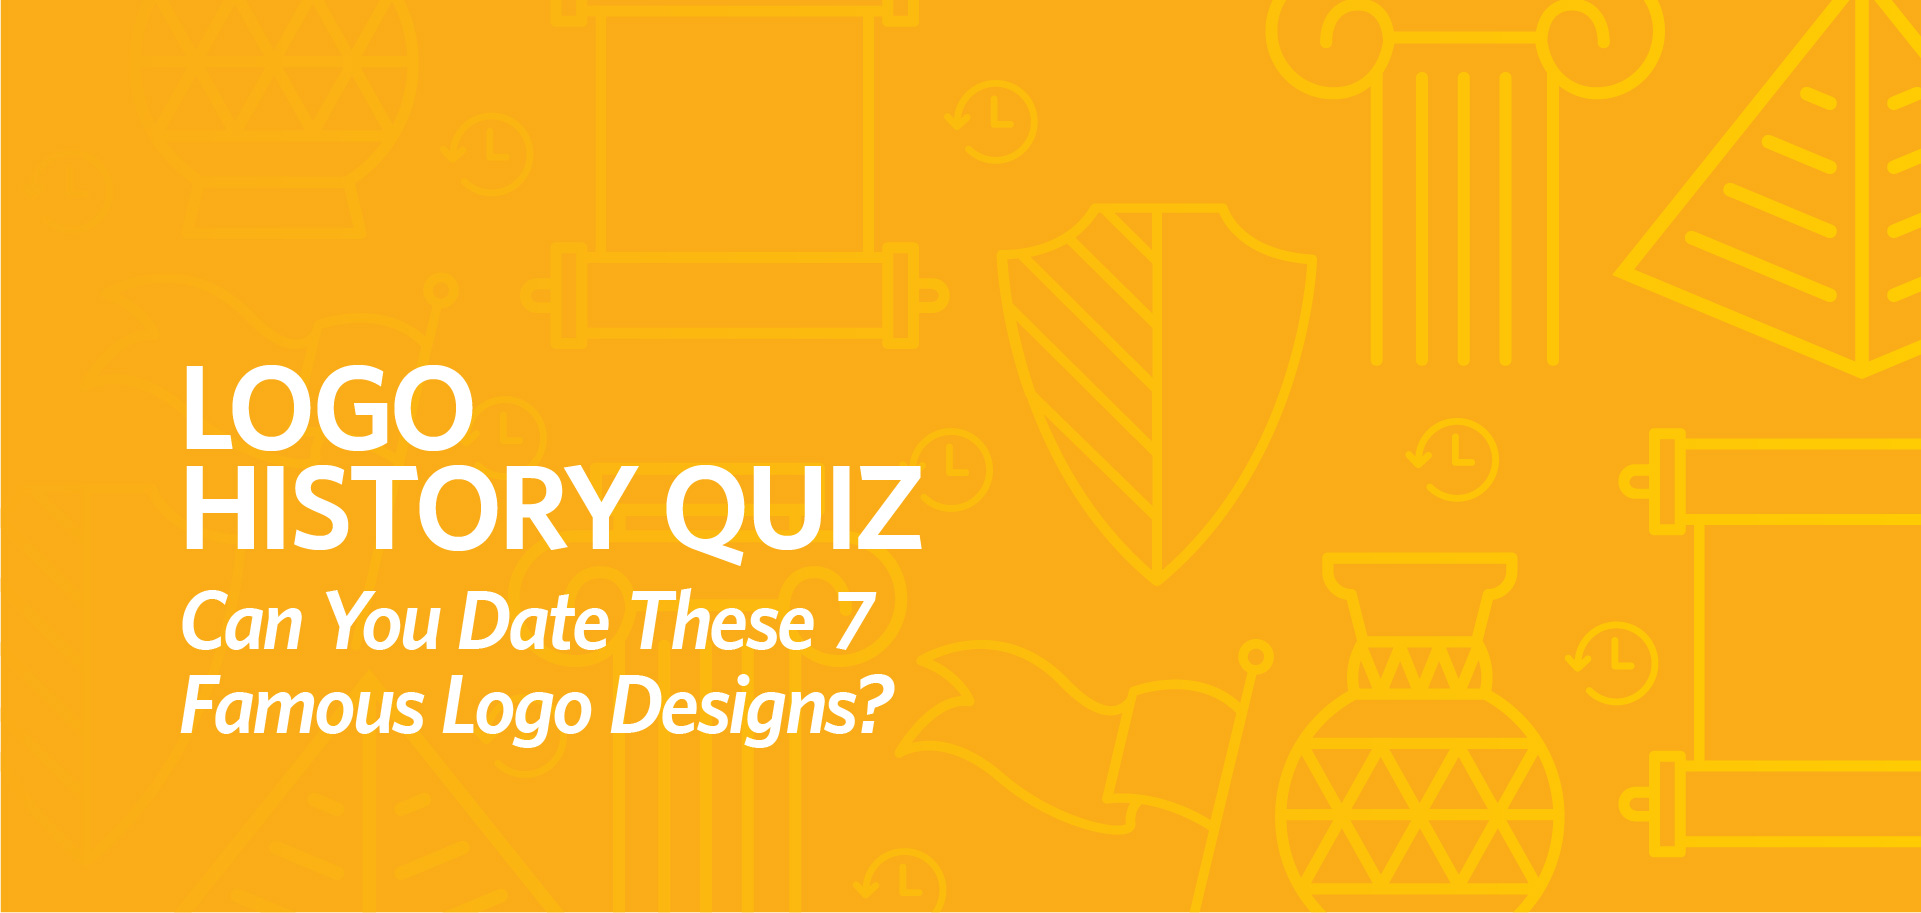 Logo History Quiz Can you date these 7 famous logo designs? by Kettle Fire Creative blog logo history Logo History Quiz: Can you date these 7 famous logo designs? logo history quiz fi